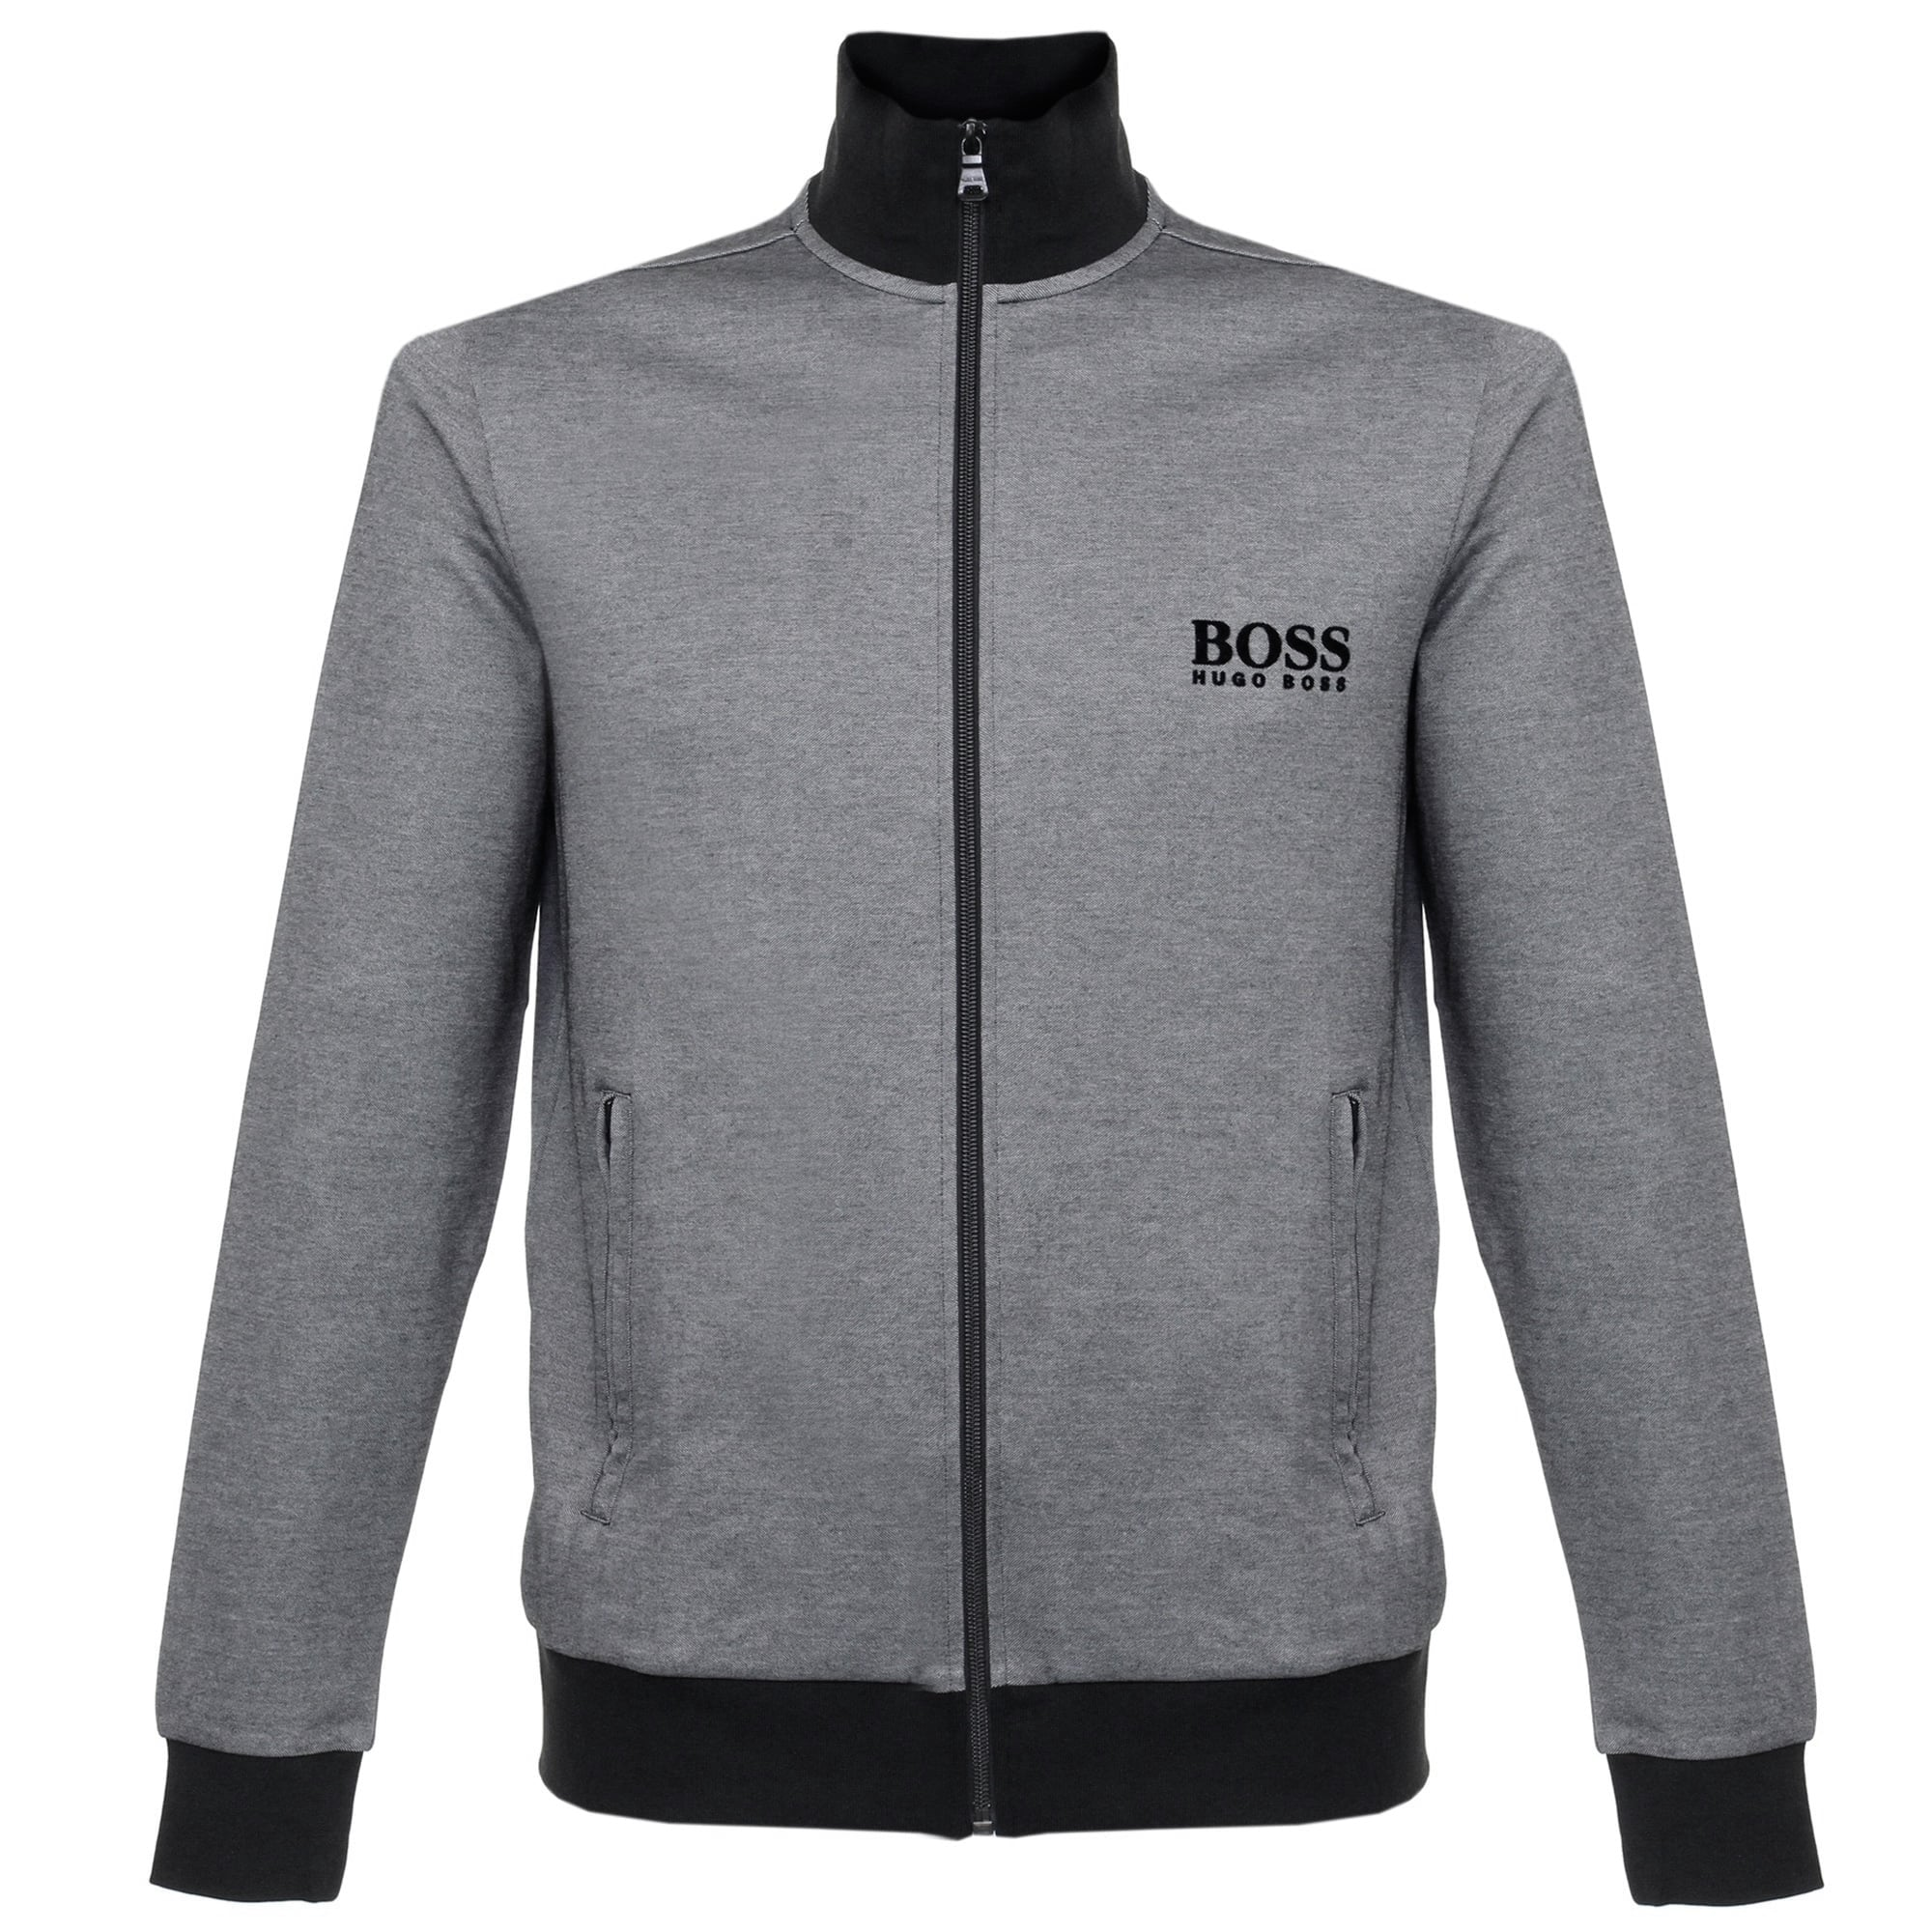 hugo boss clothing uk jacket zip black track top. Black Bedroom Furniture Sets. Home Design Ideas